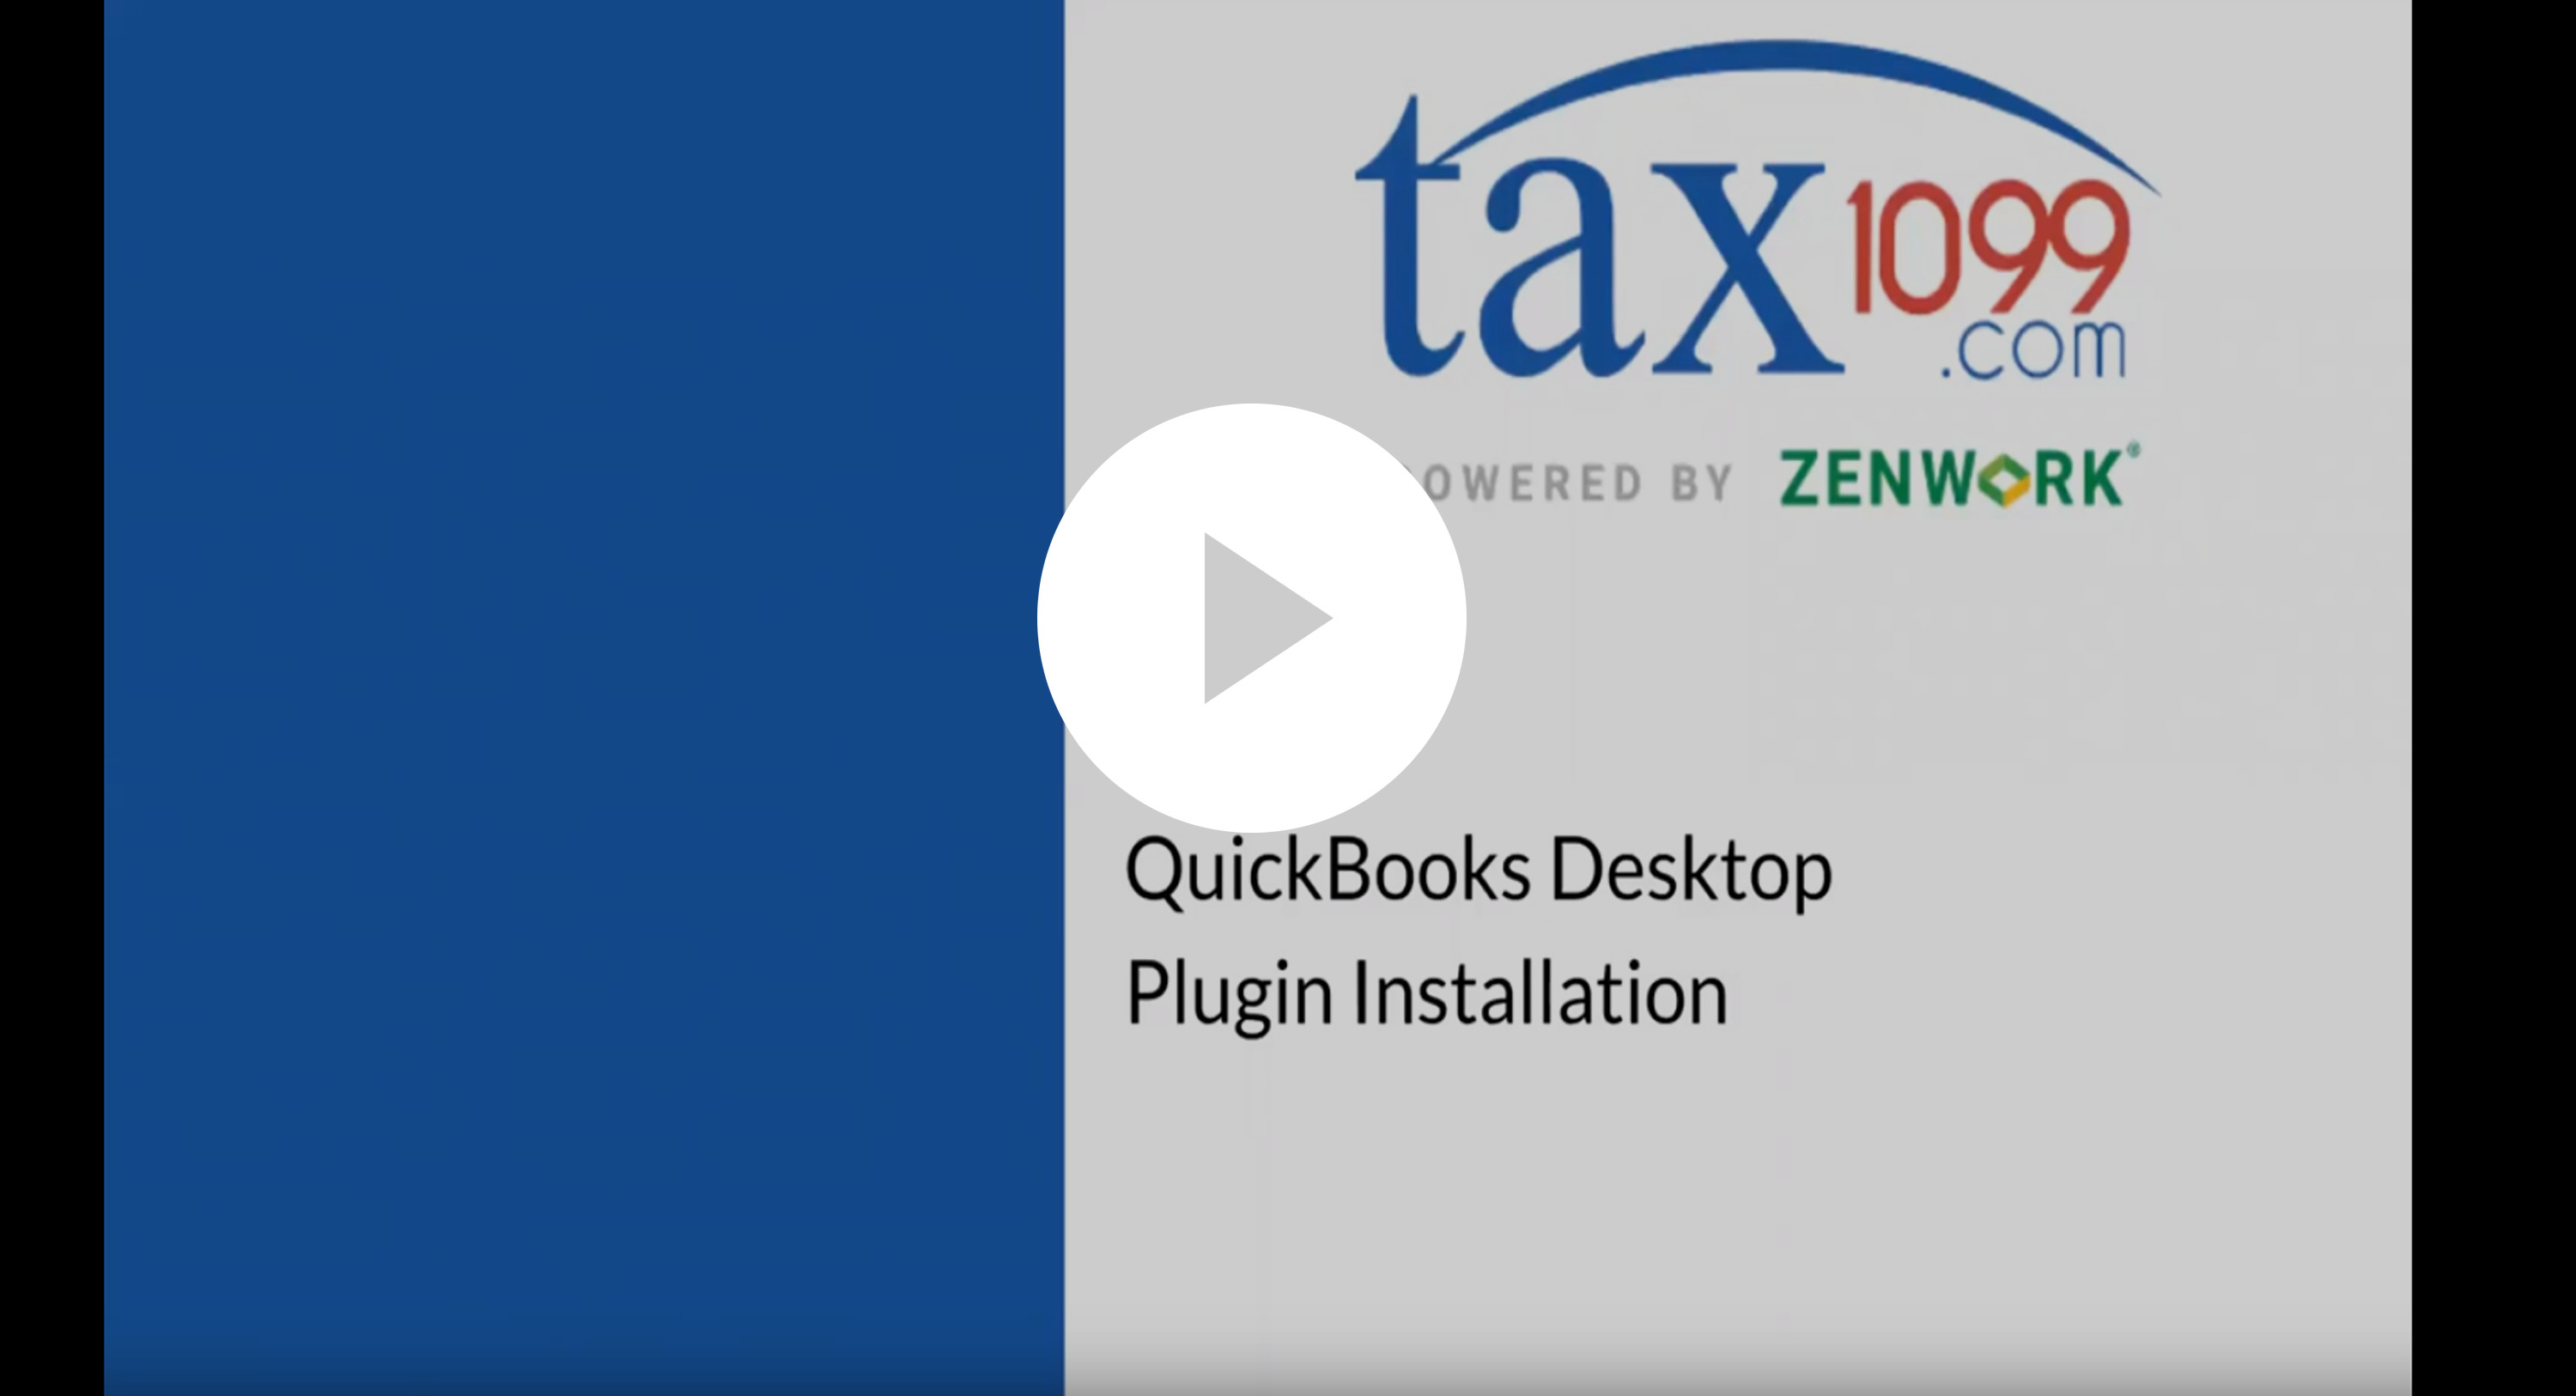 Quickbooks Desktop Plugin Installation